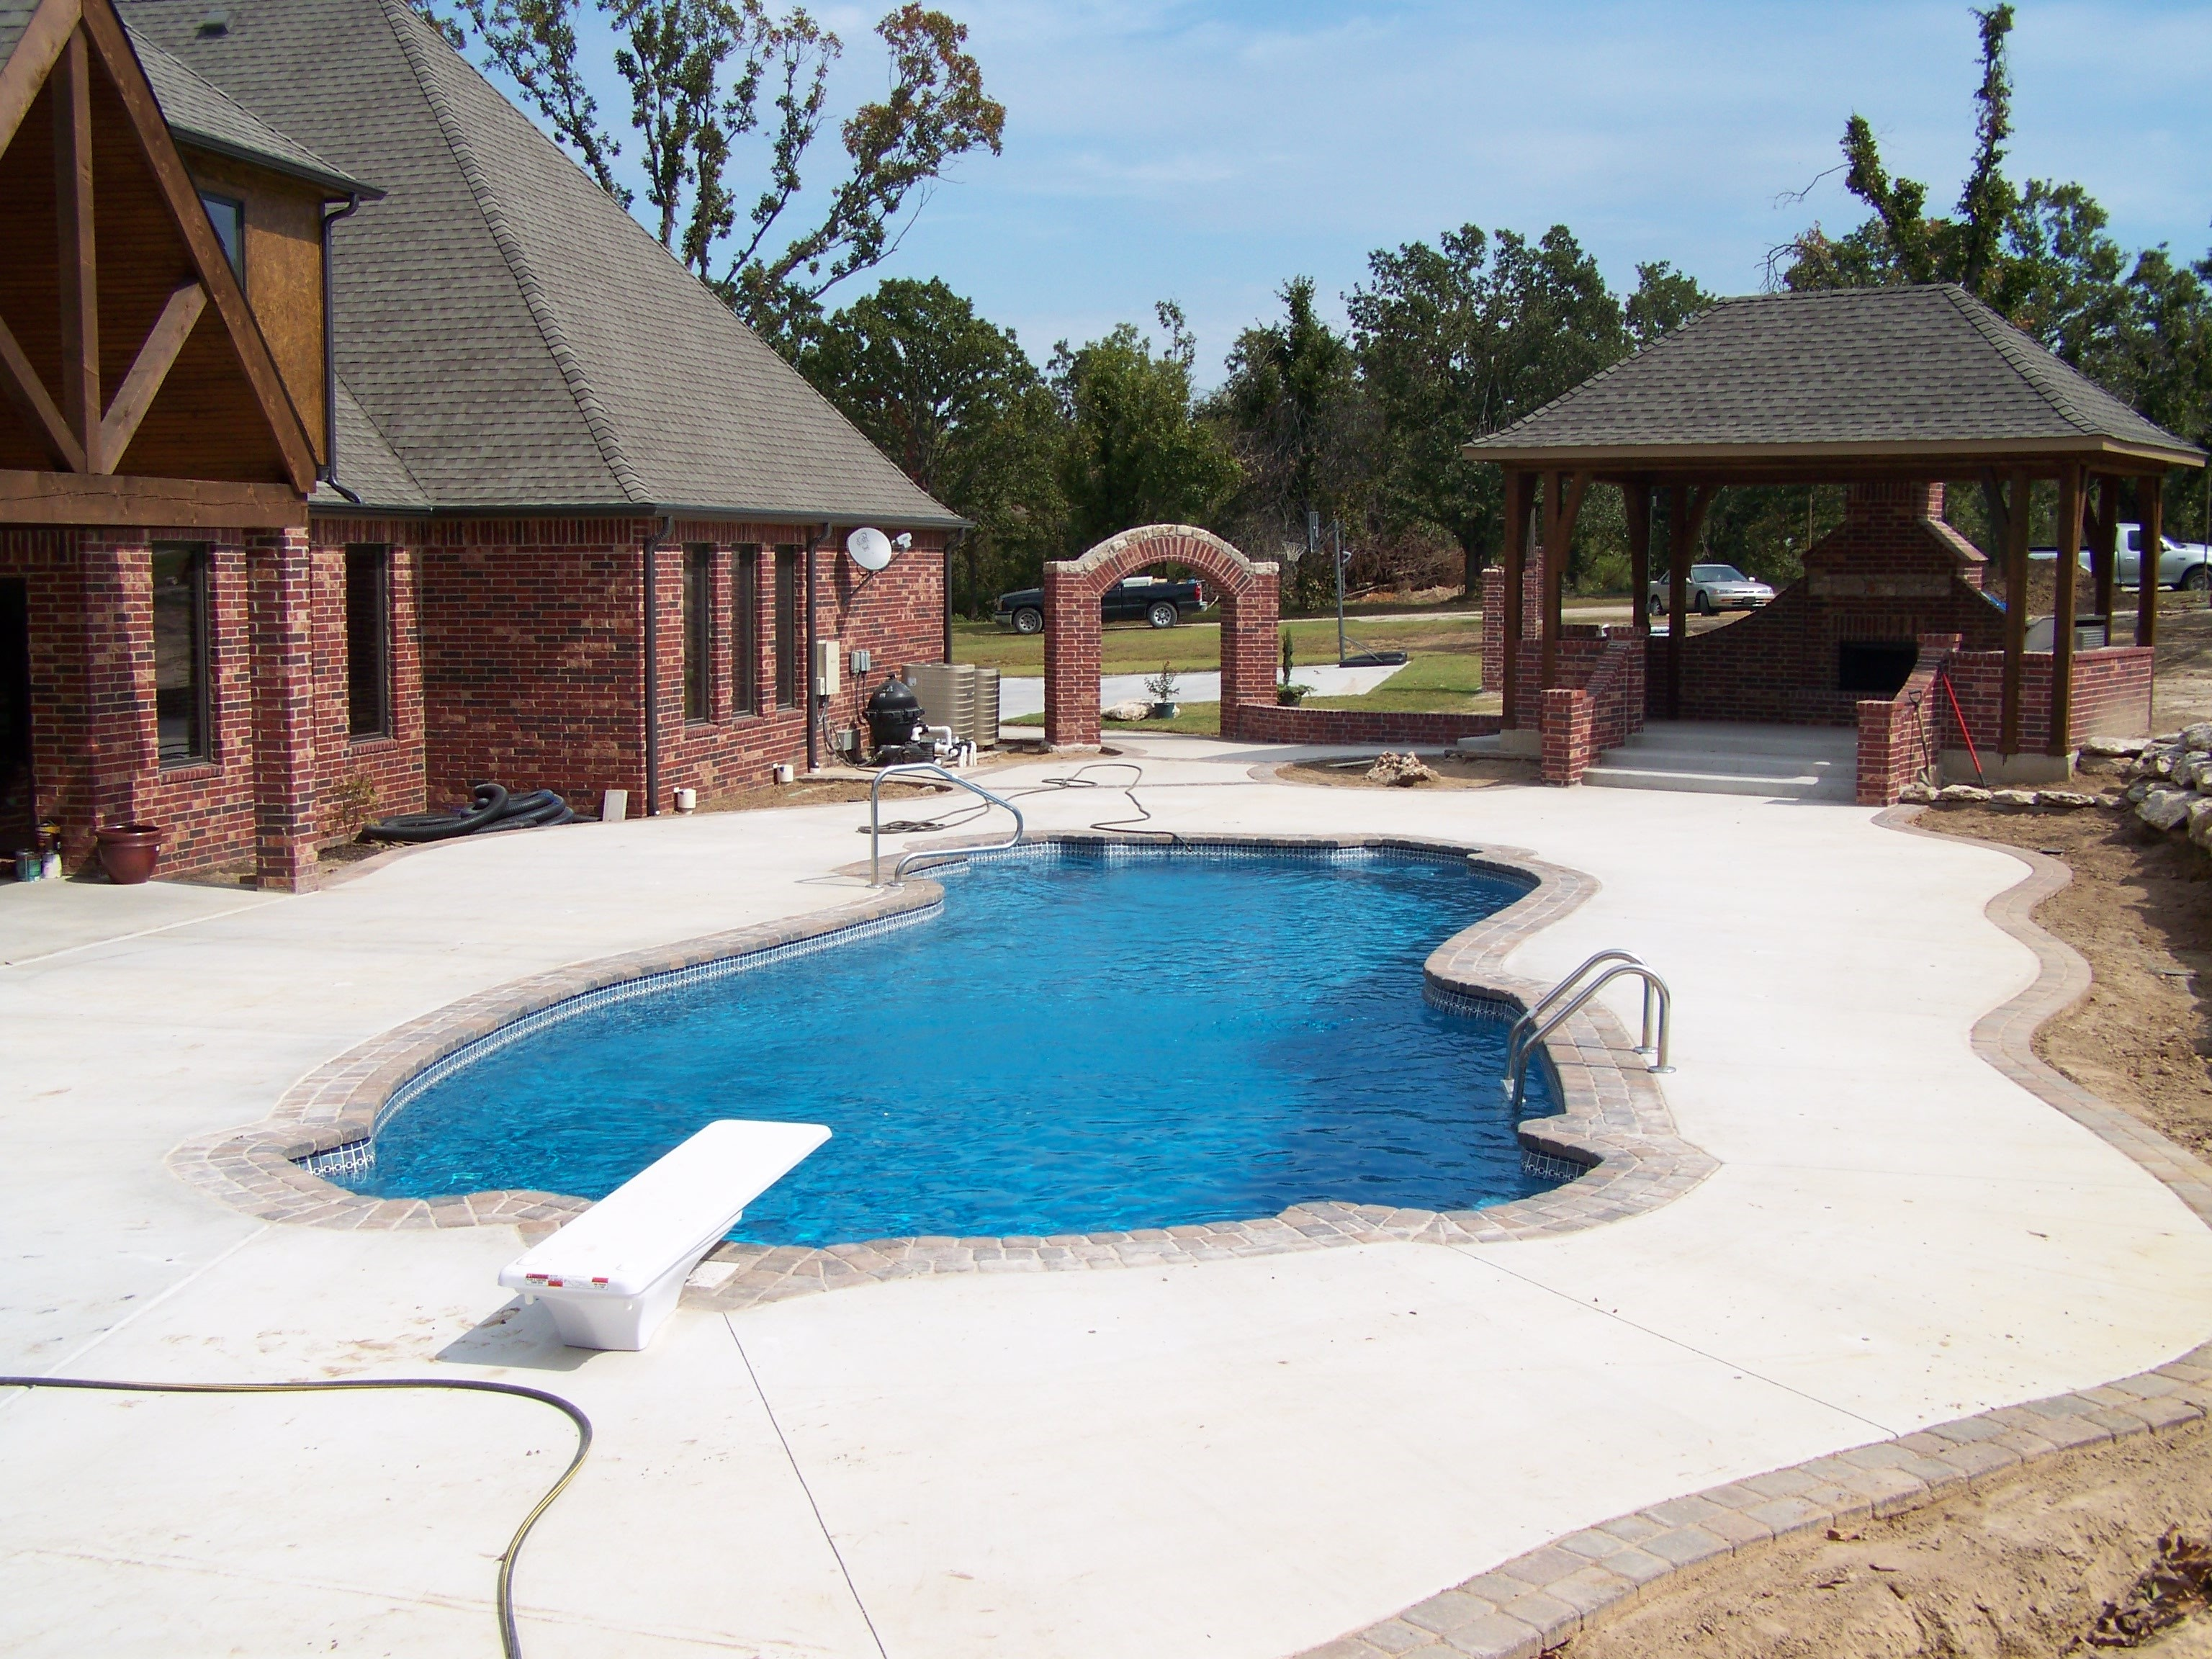 All fiberglass pool gallery images swimming pool - Swimming pool contractors oklahoma city ...